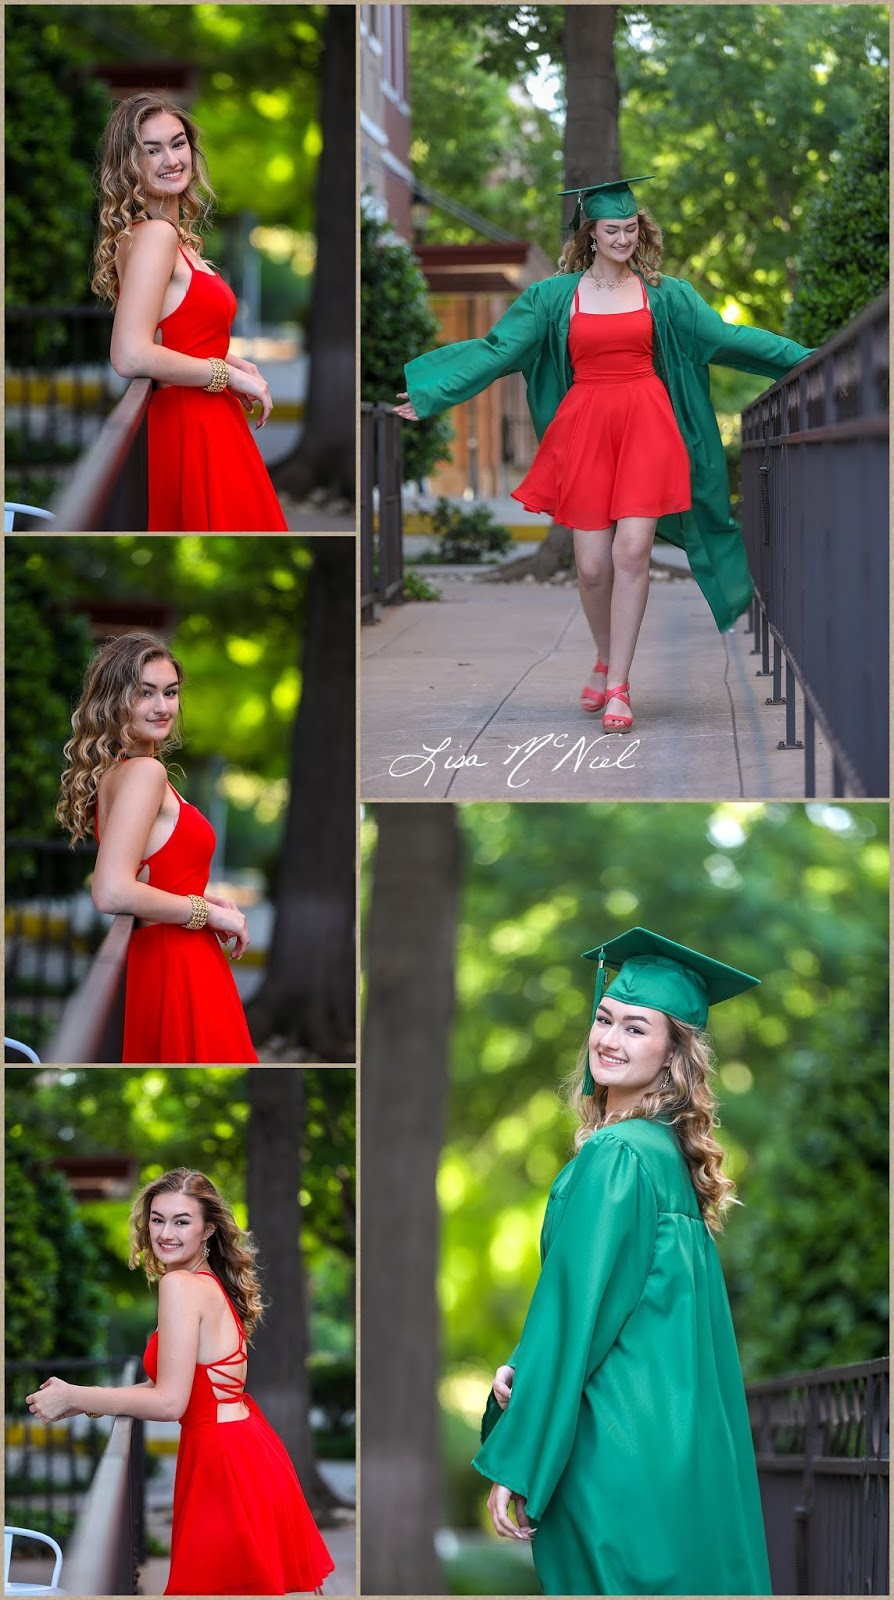 pretty blond teen in red dress and cap and gown Texas photographer